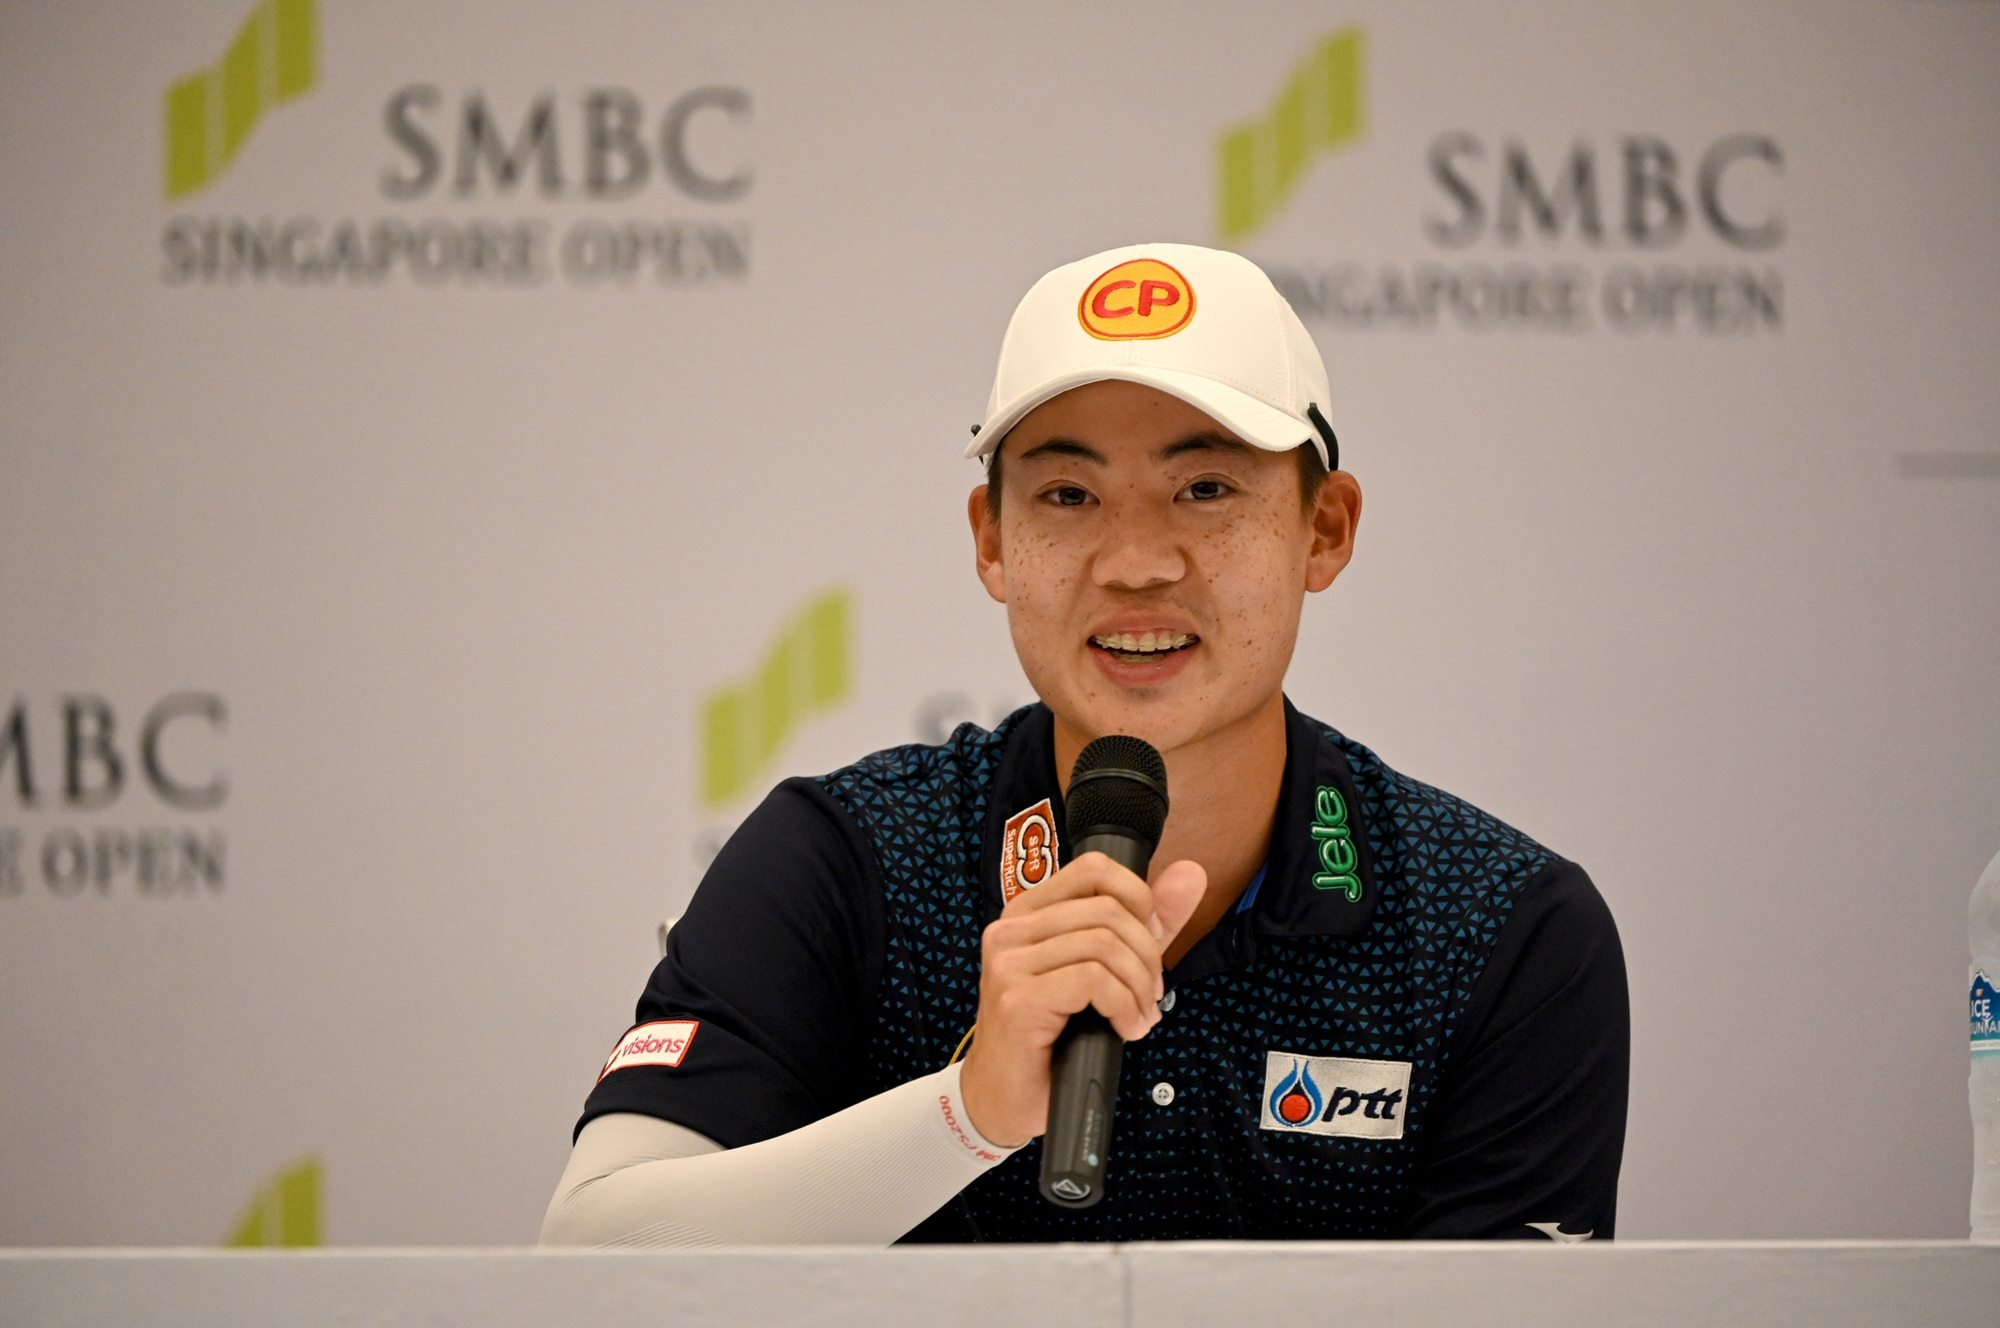 golfdigg_golfdiggtoday_SMBC Singapore Open 2019